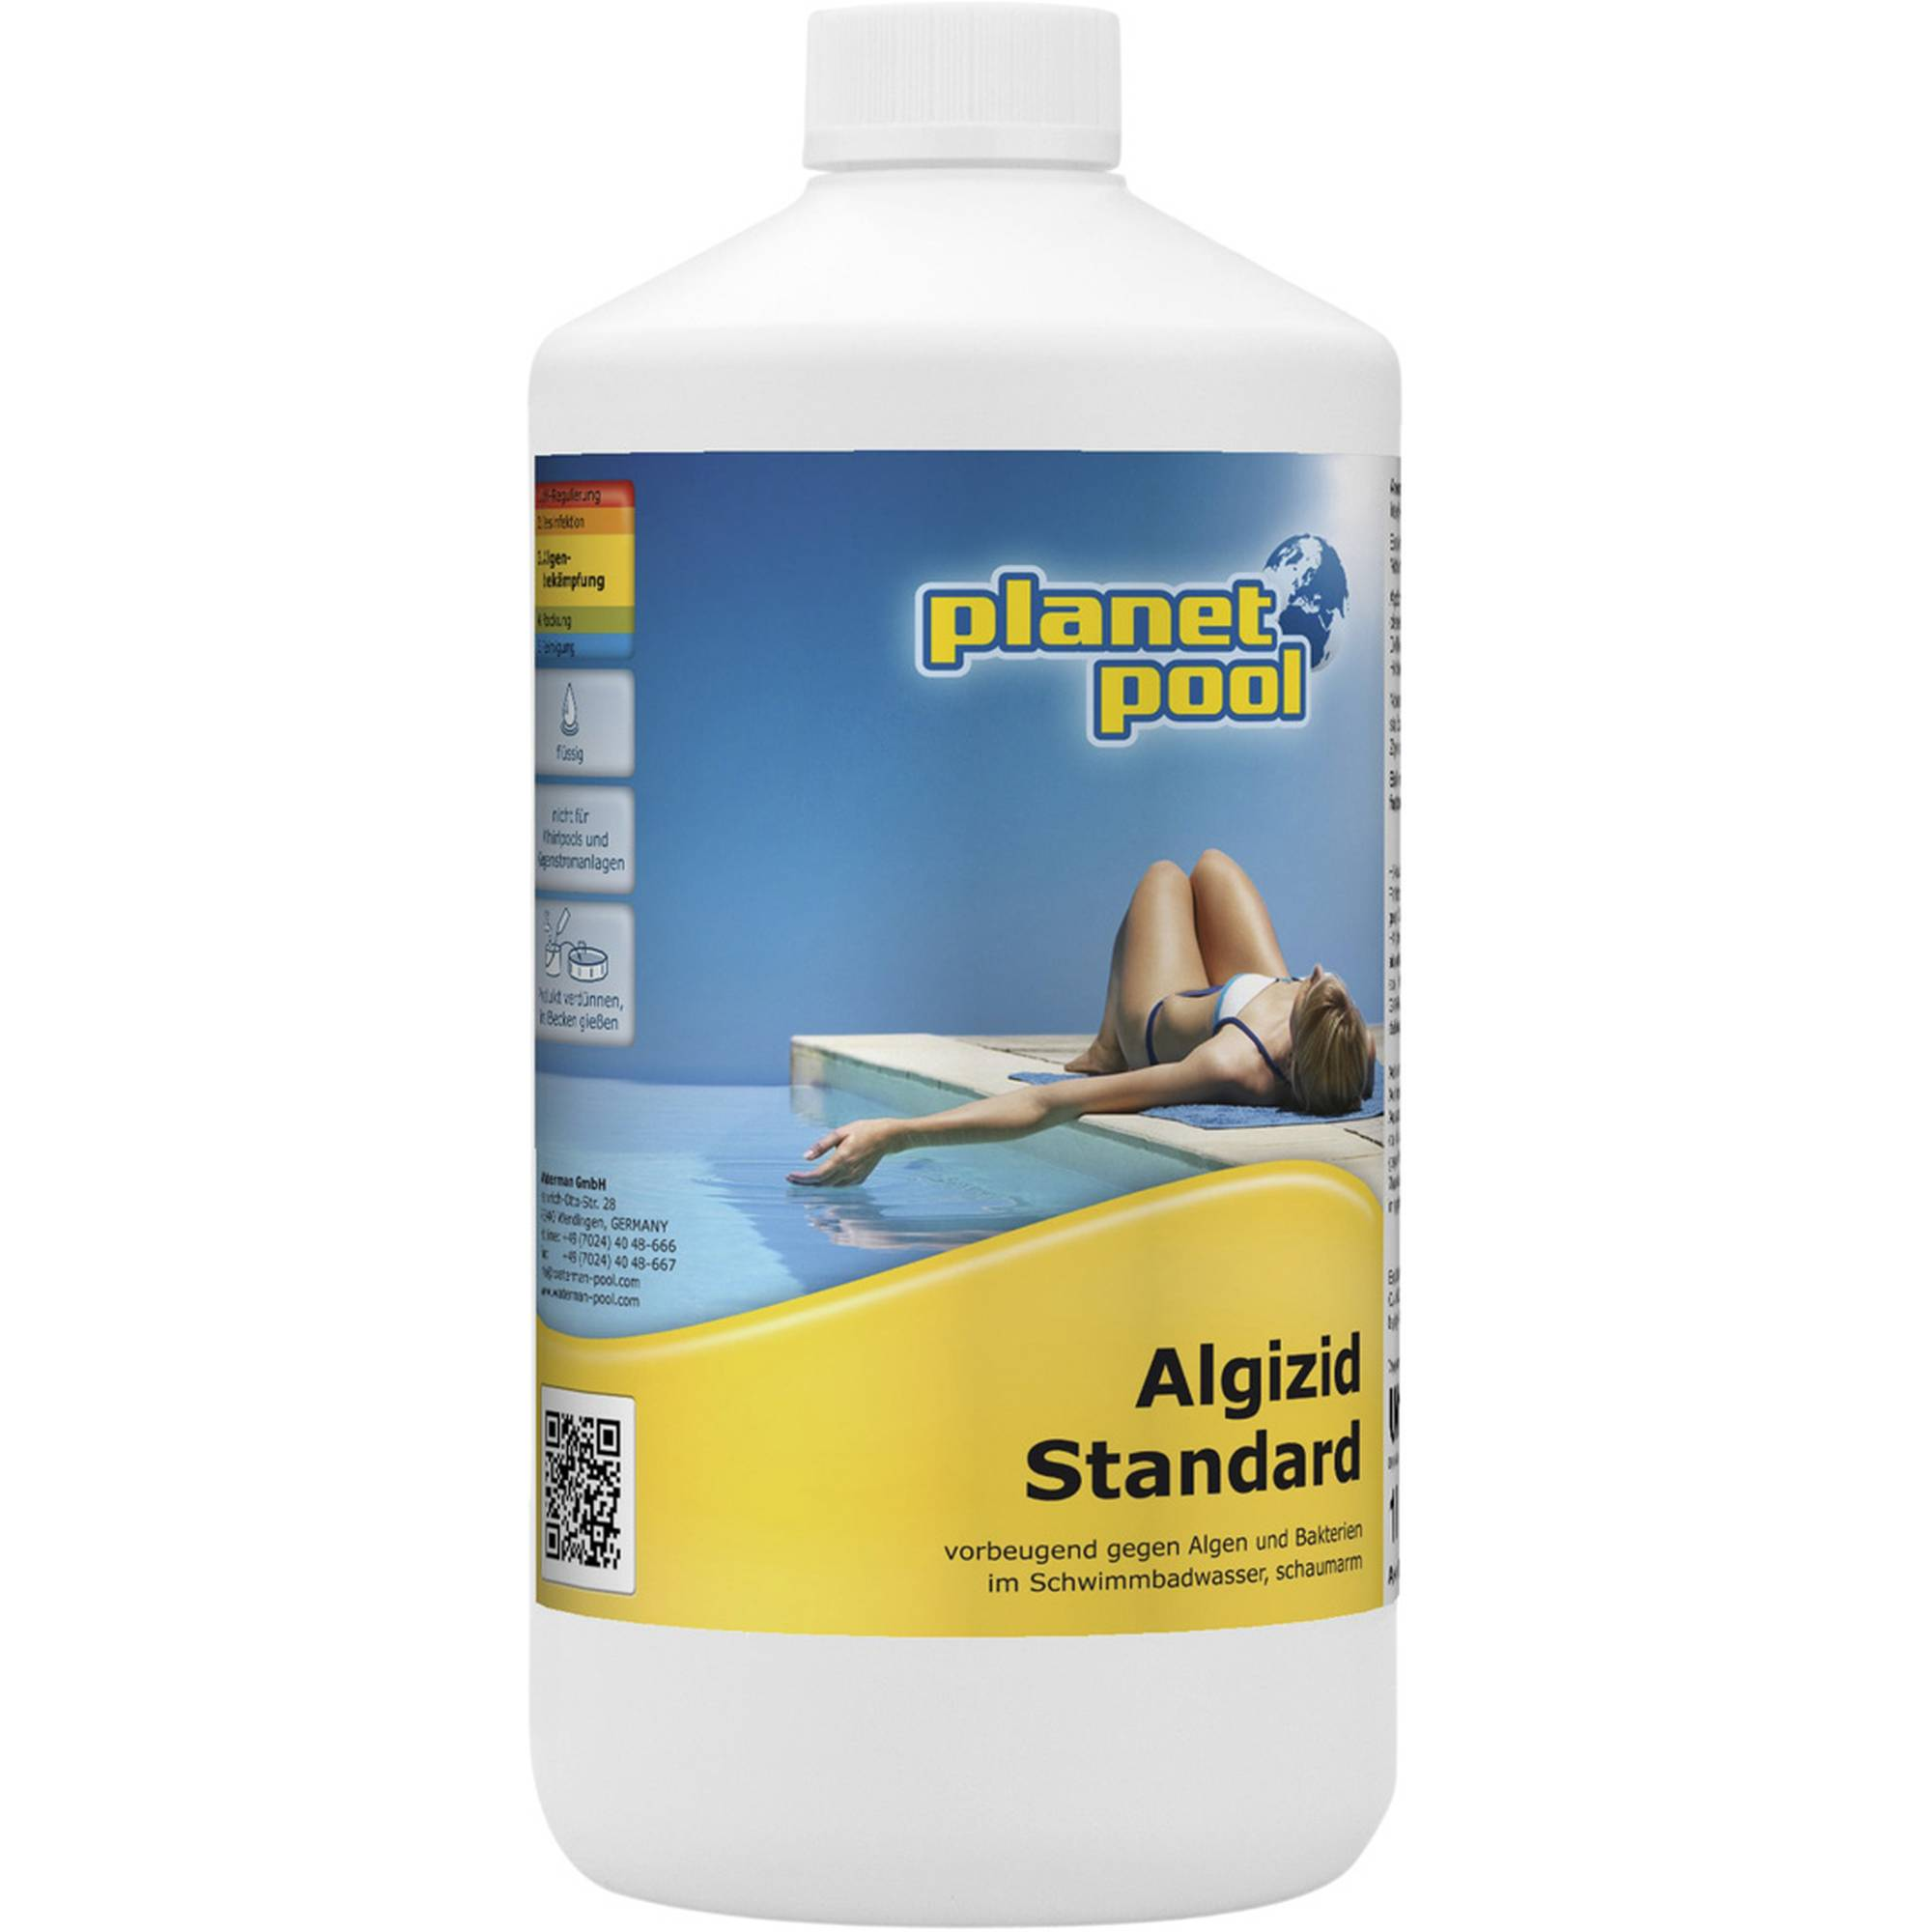 PLANET POOL Algizid Standard 1 Liter